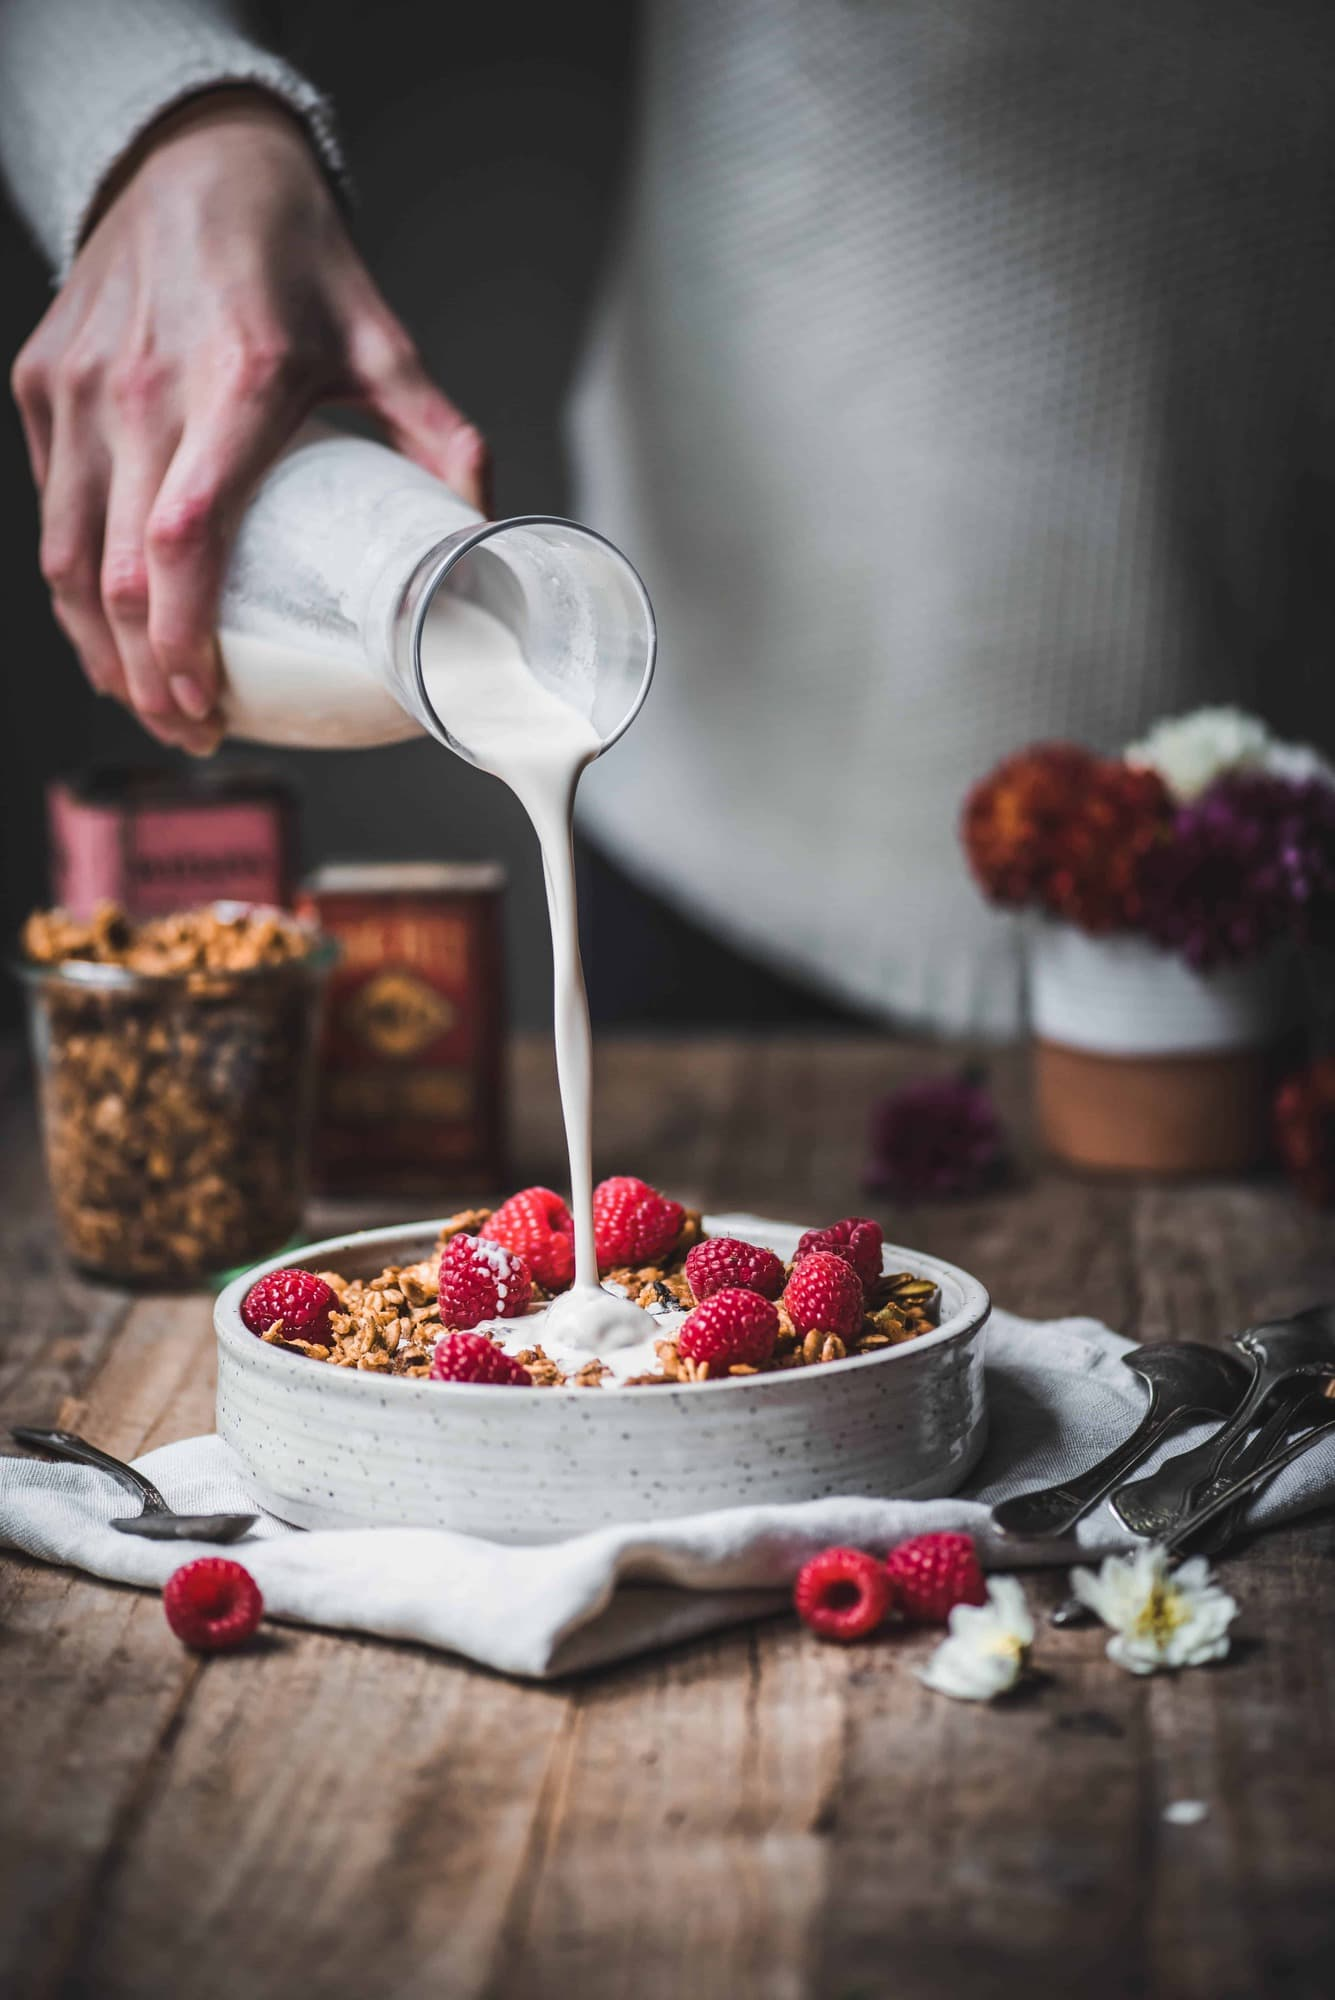 Pouring milk over granola with fresh raspberries on a rustic wood table